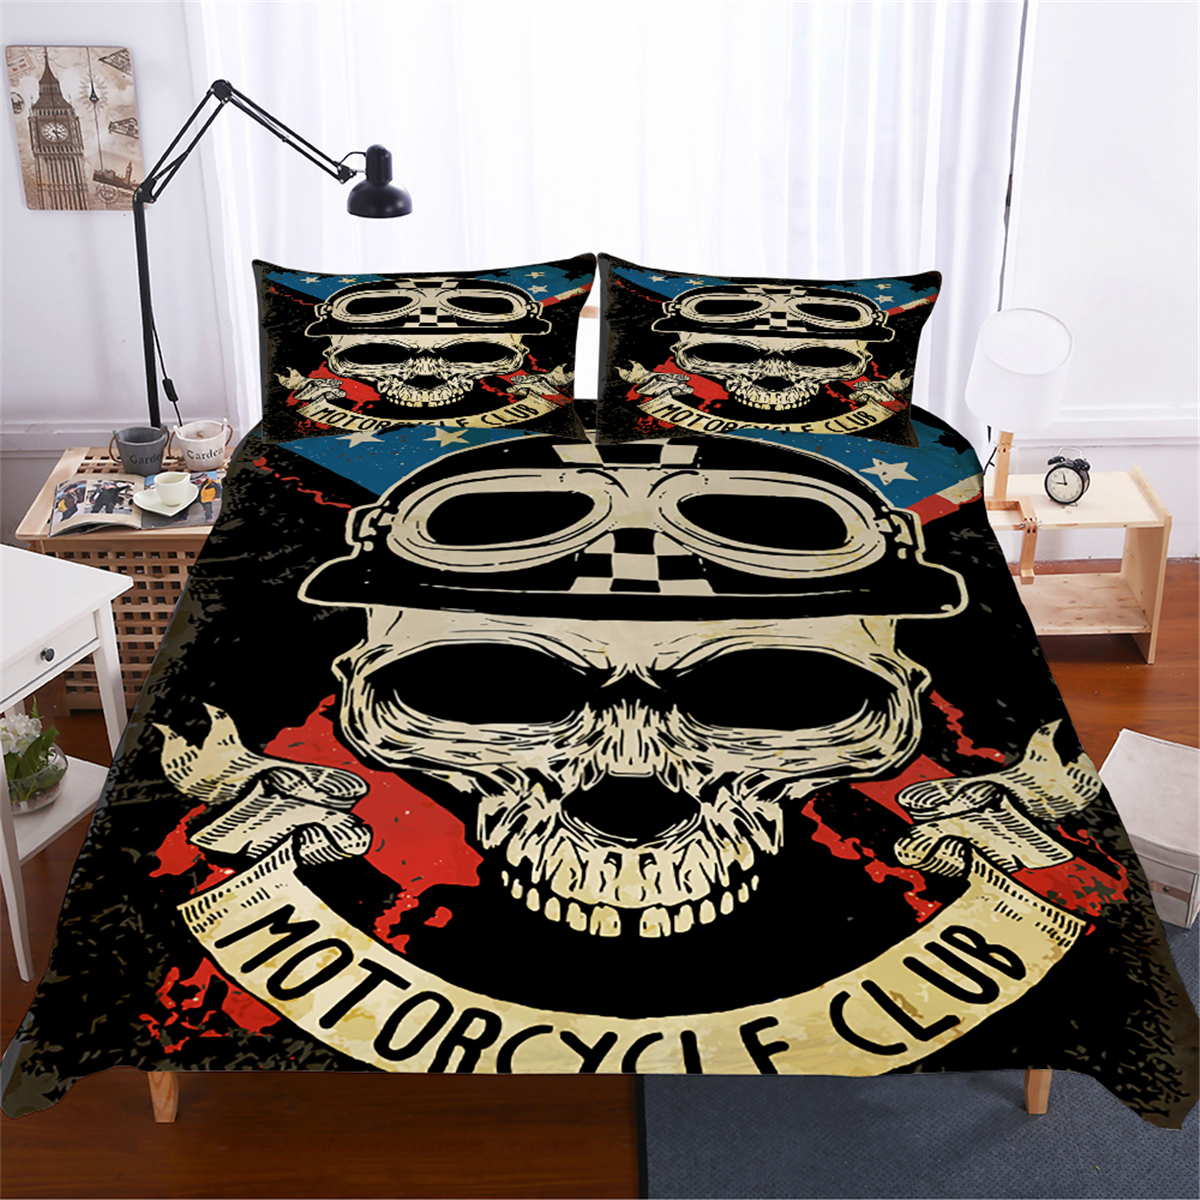 Skull Quilt Cover Pillow Sham Motor Club Printing Hip Hop Soft Bedspread 100% Microfiber Teens Winter Home Soft Bedding Sets